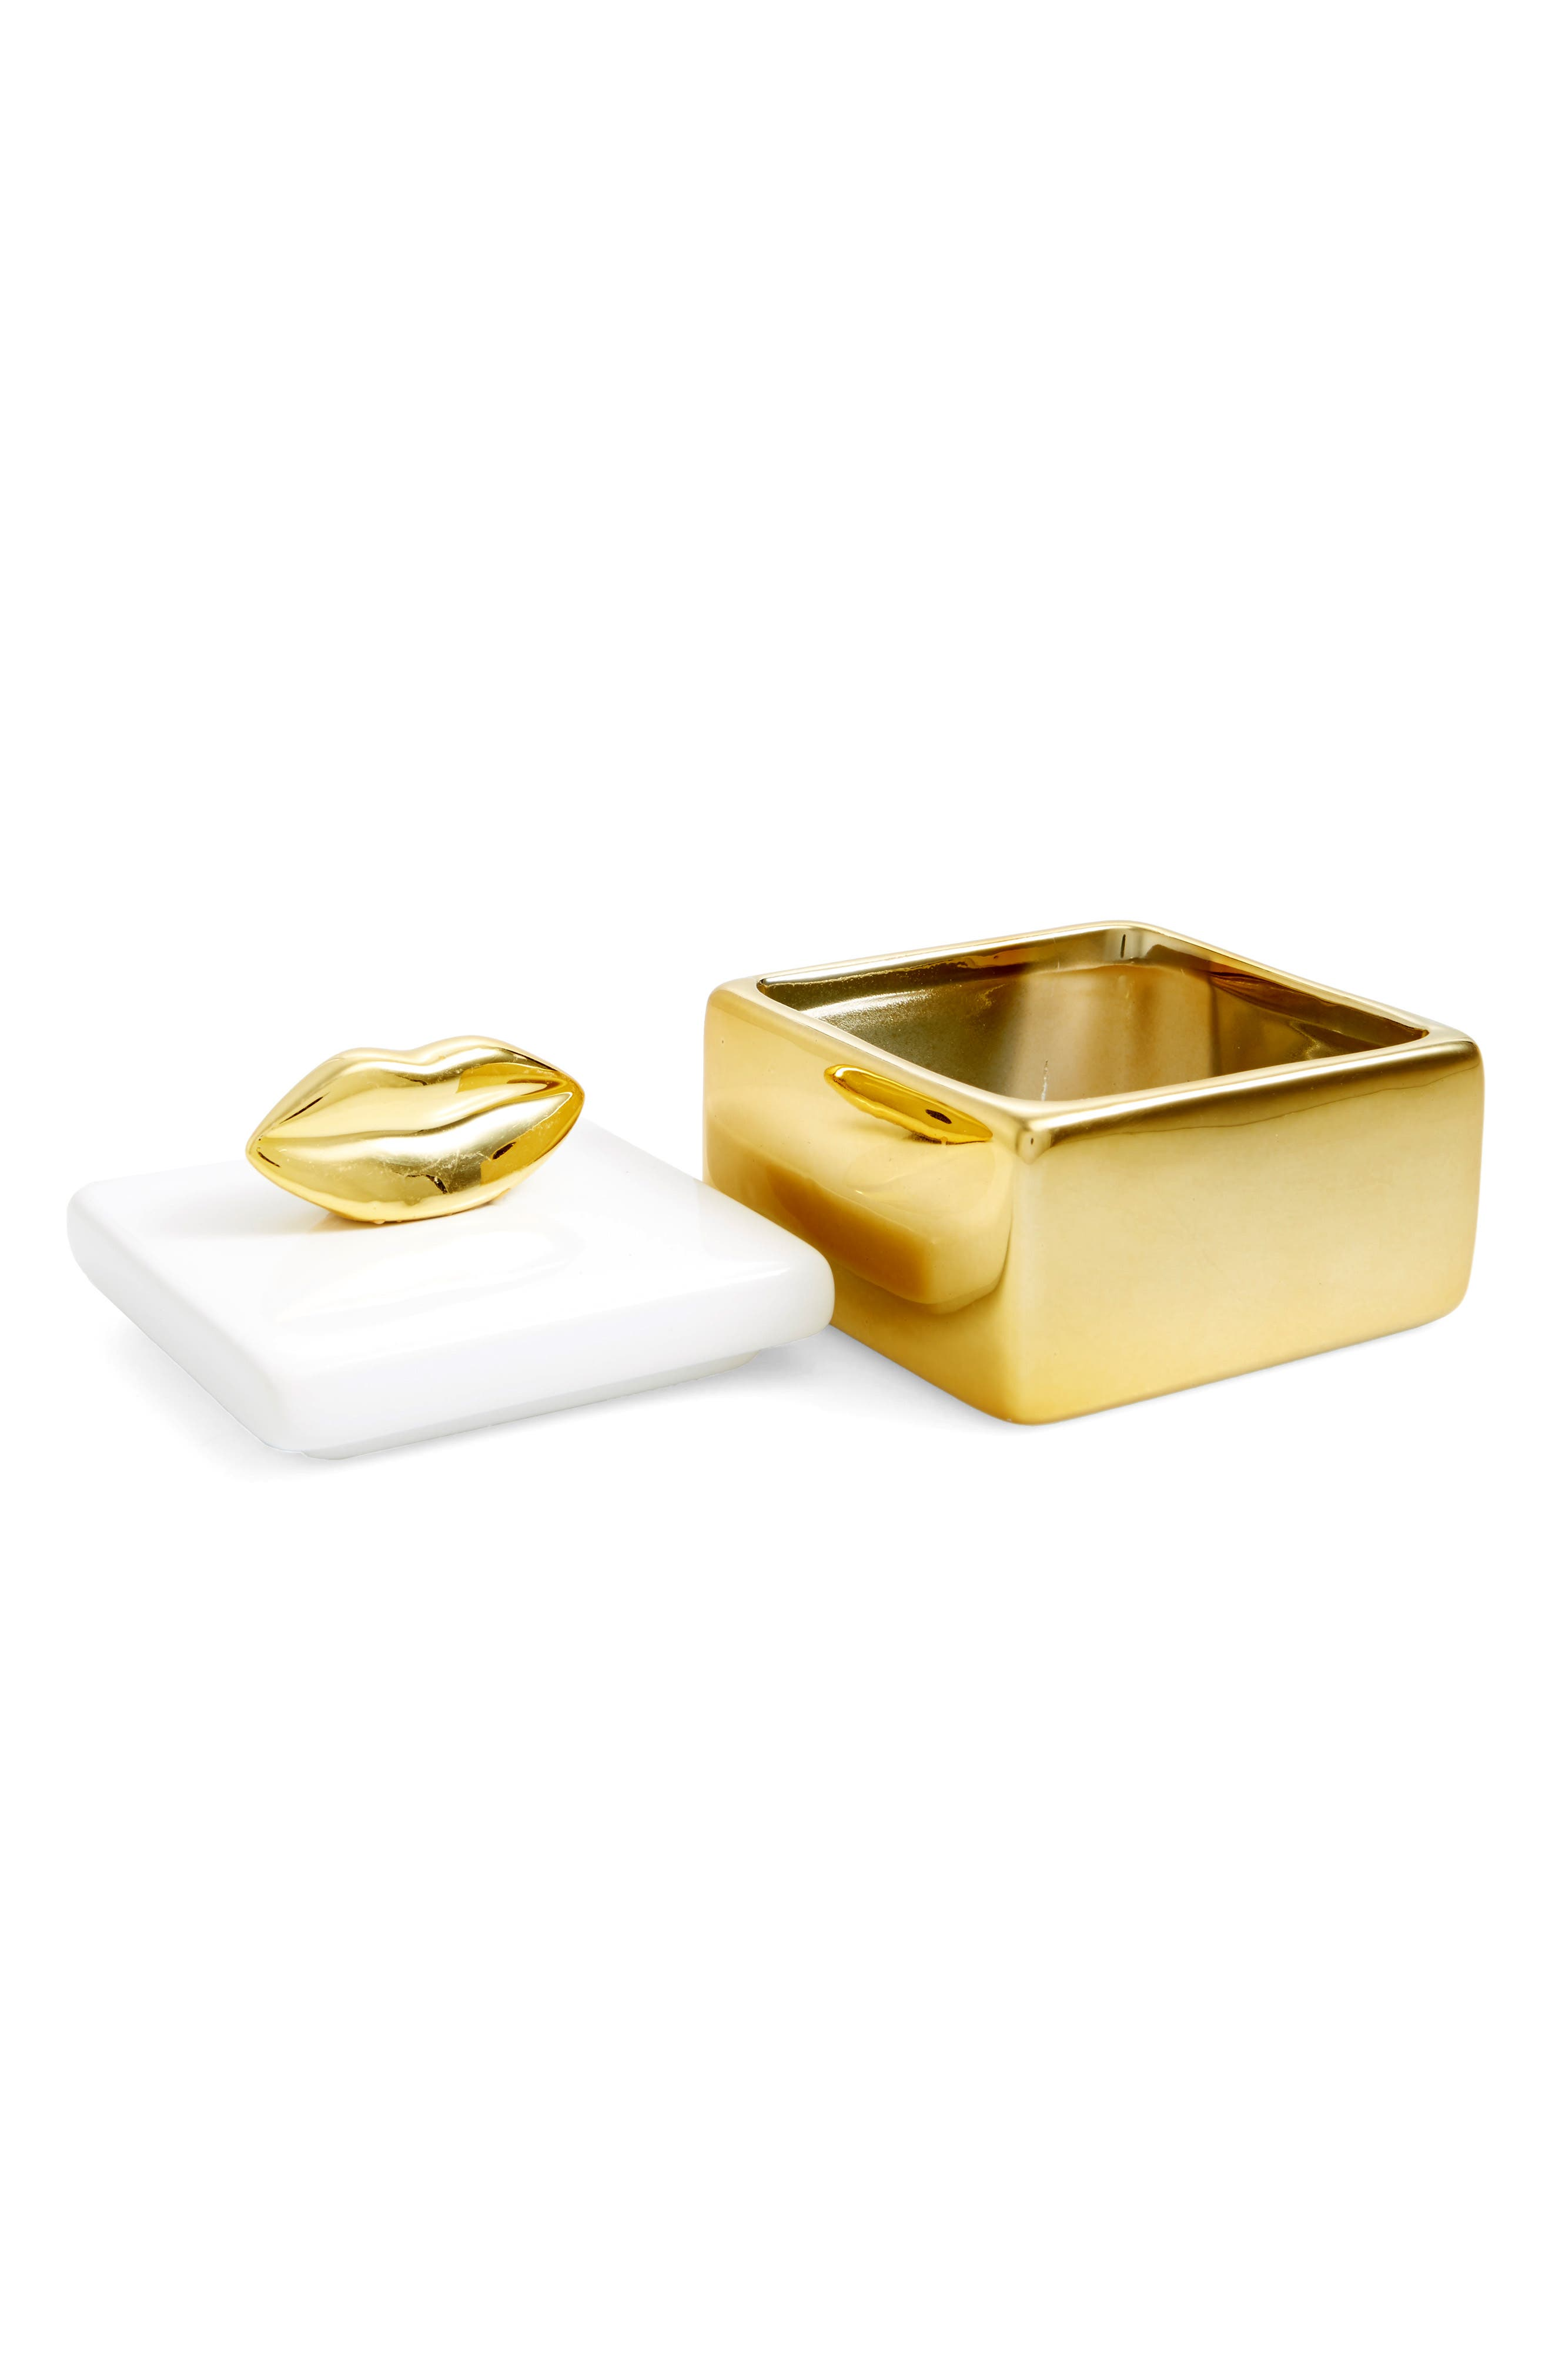 Lips Trinket Box,                             Alternate thumbnail 2, color,                             Gold